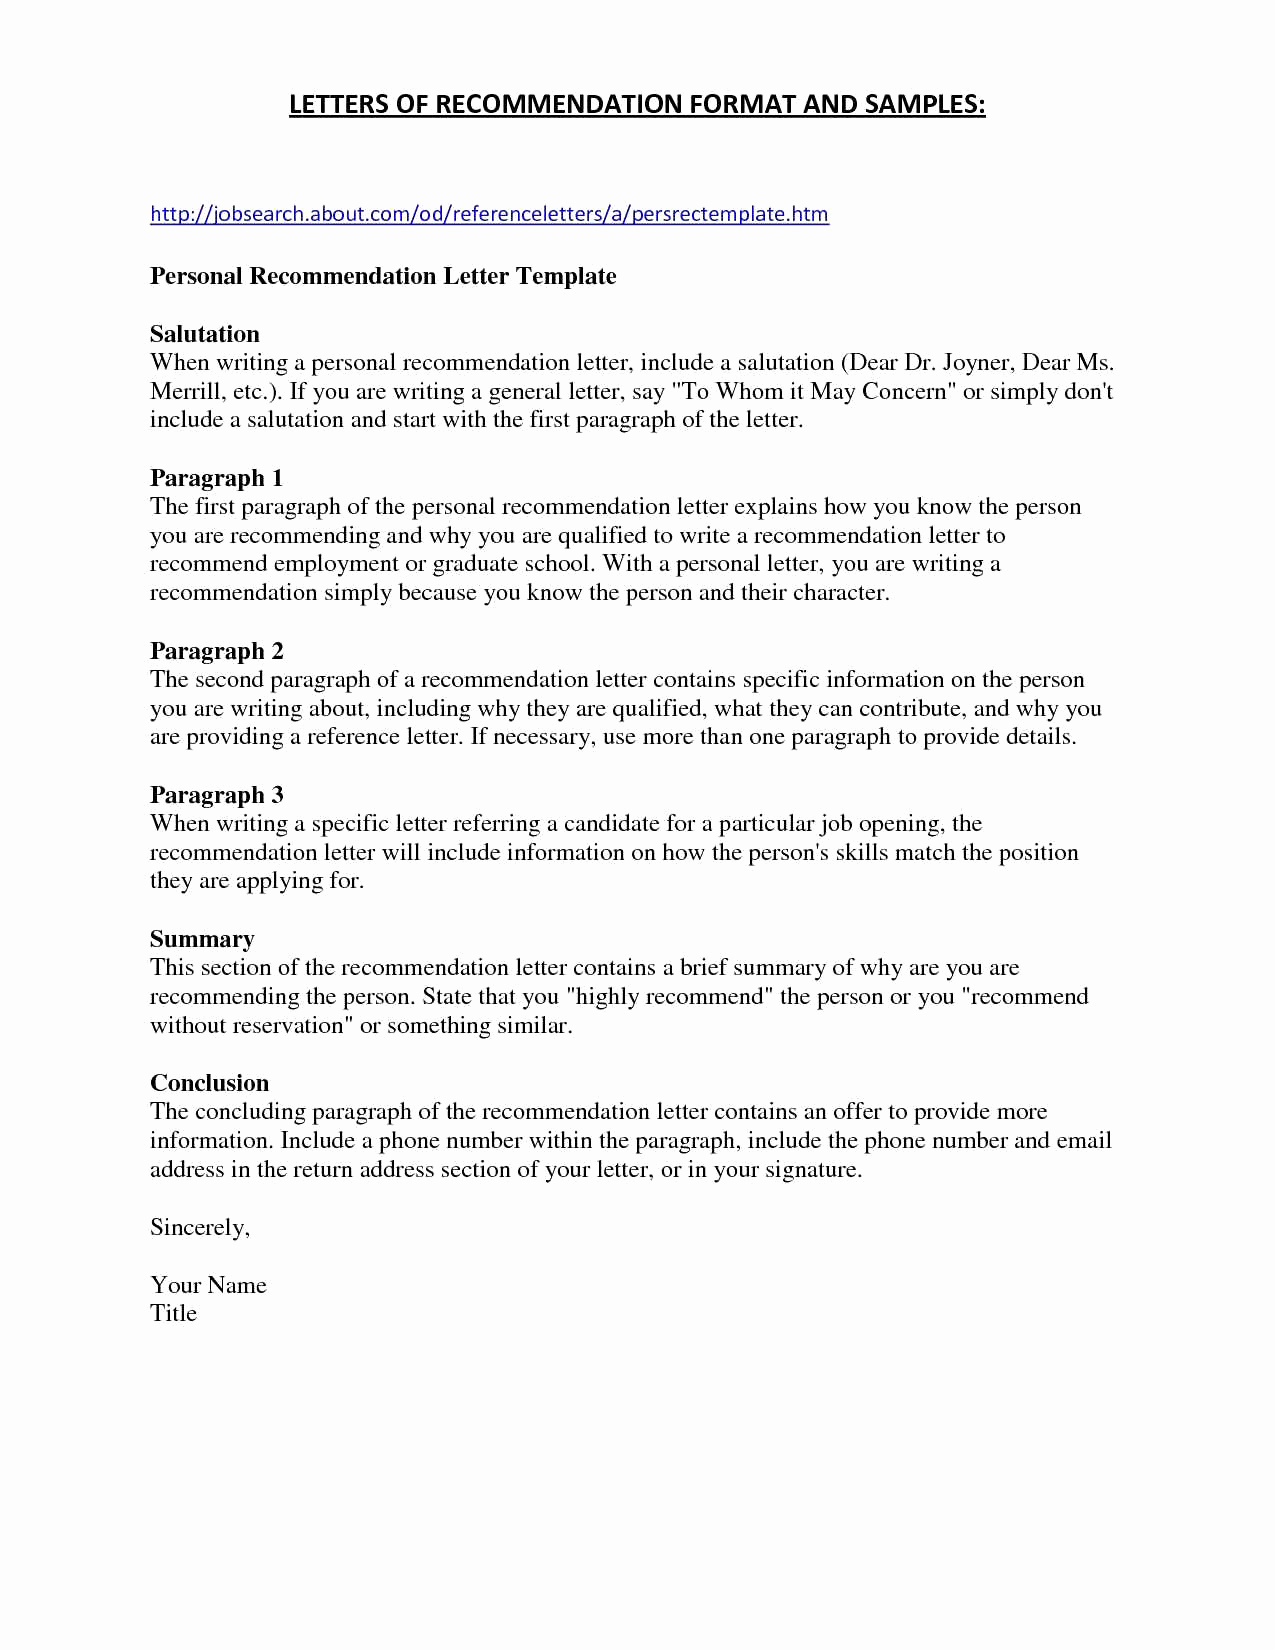 General Cover Letter Template - Cover Letter for Call Center Beautiful General Cover Letter Sample